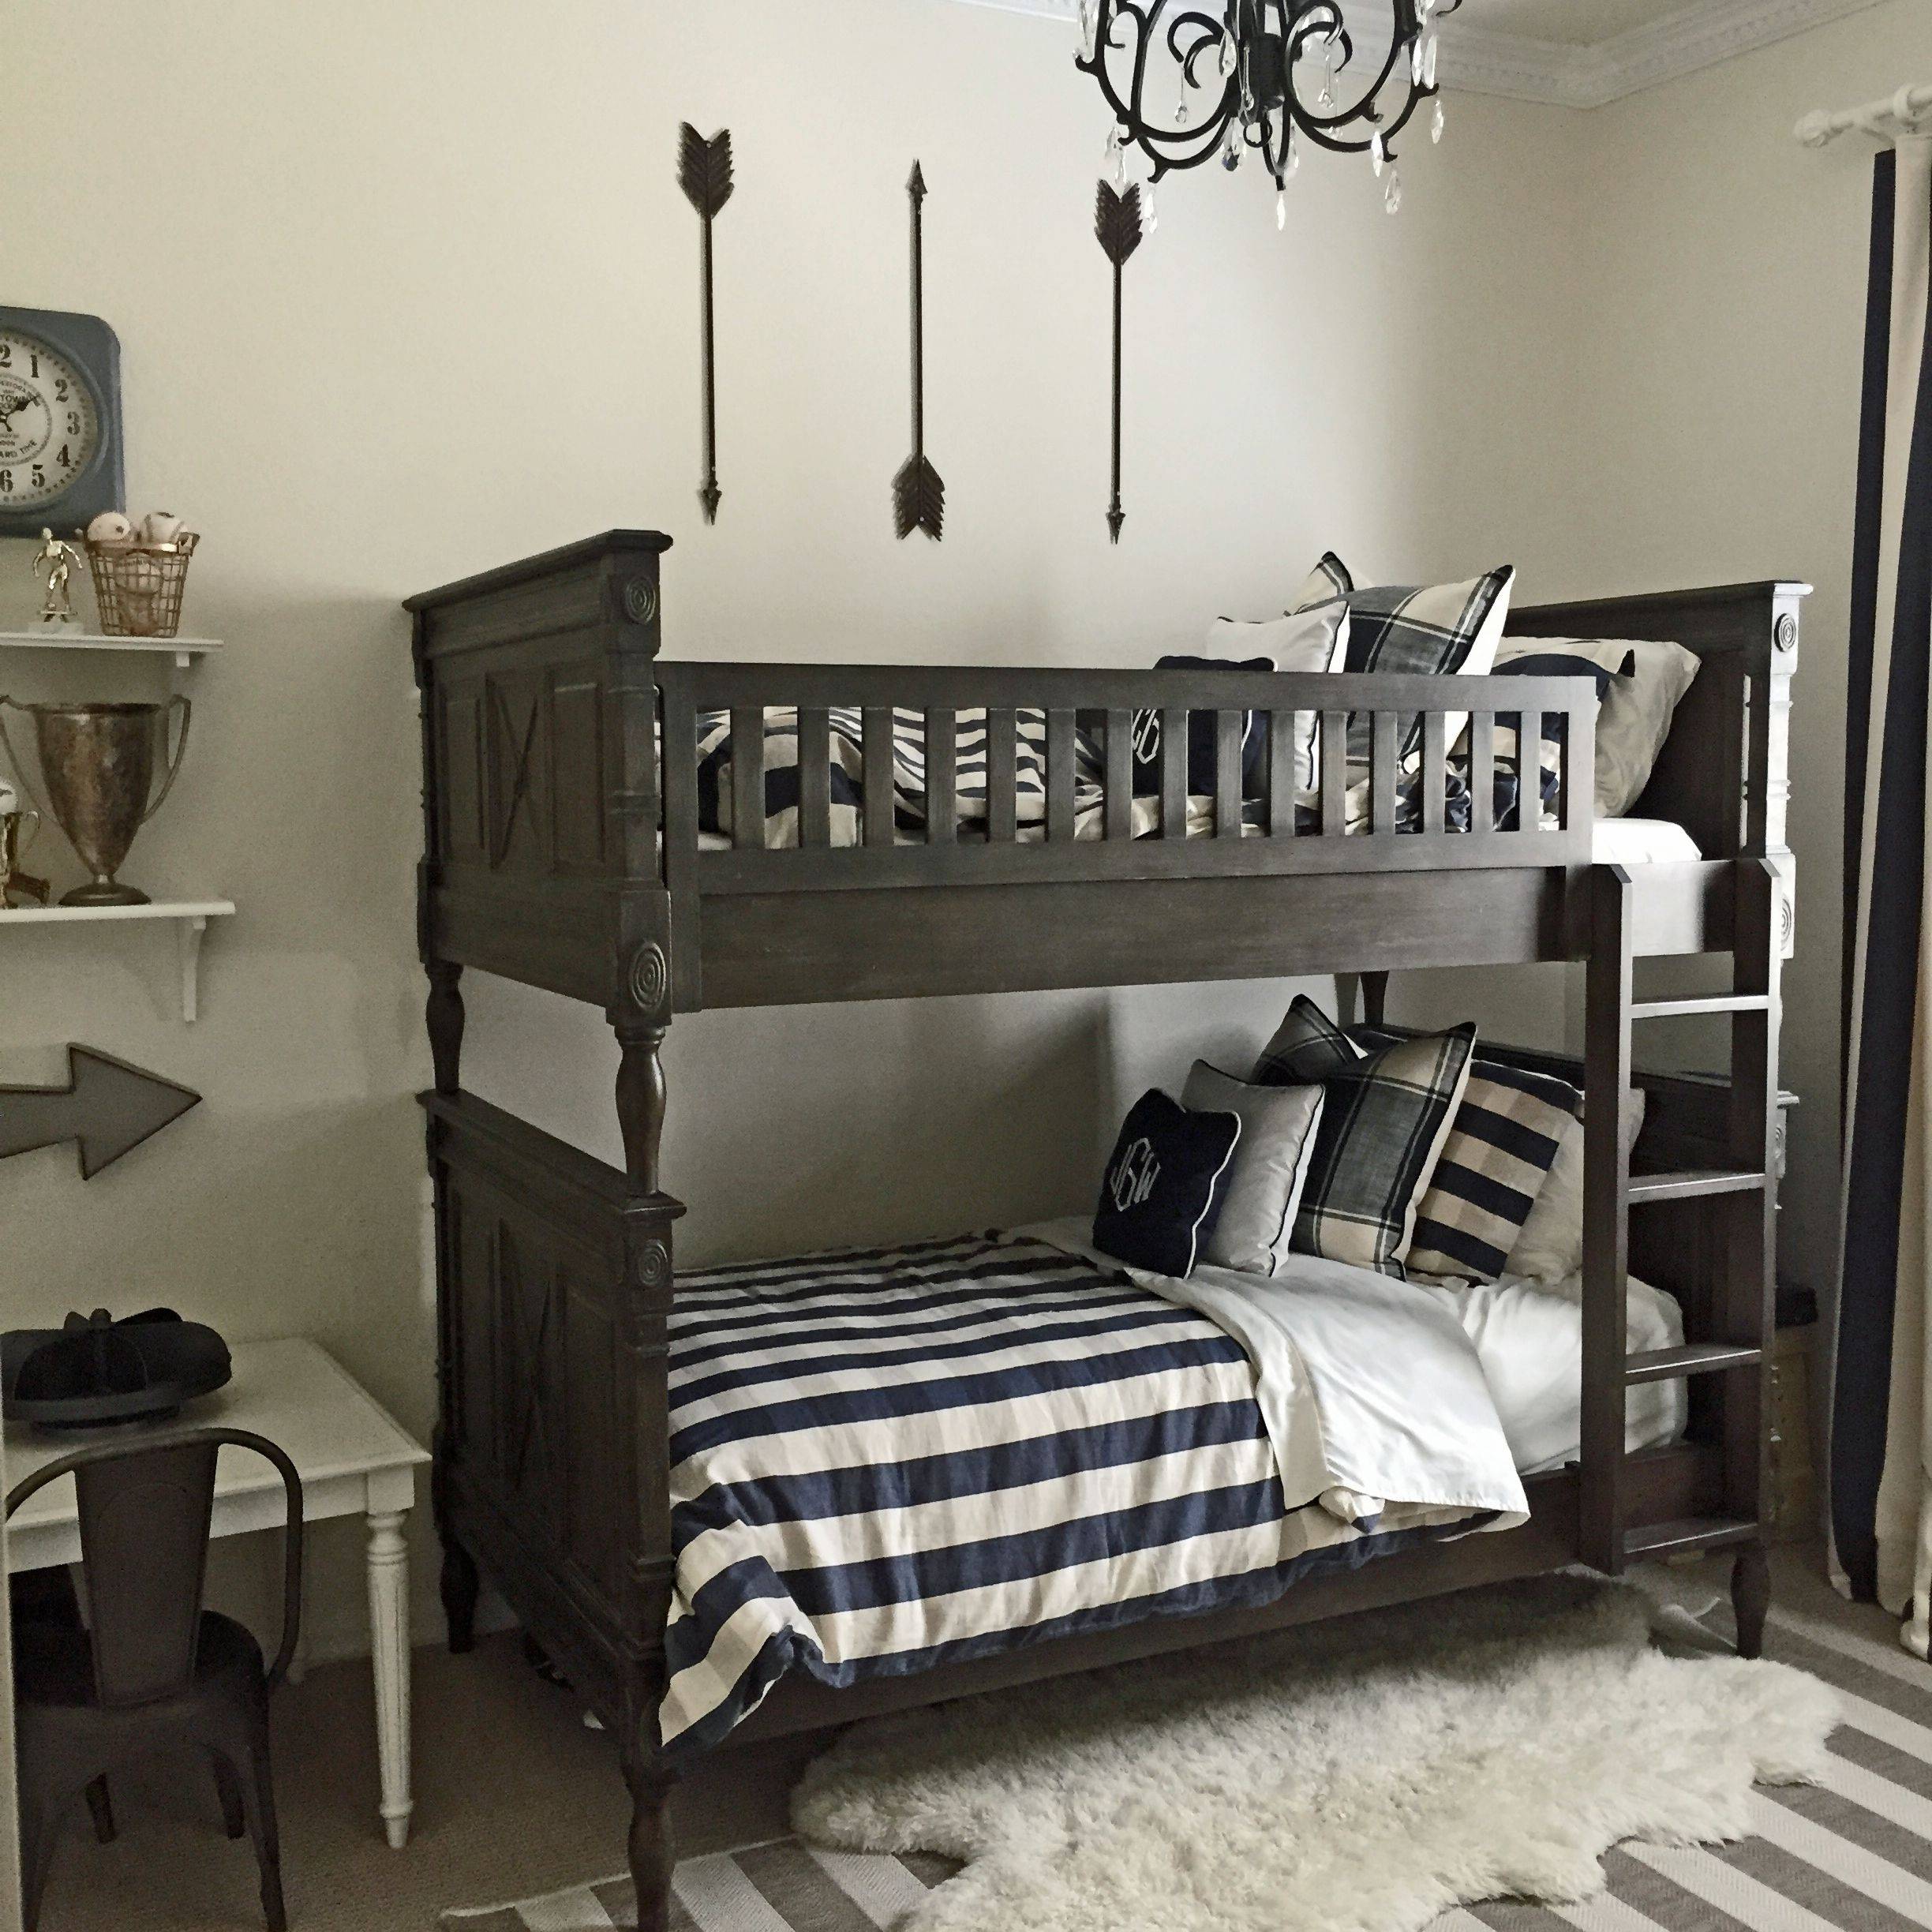 Restoration hardware bedroom - Home Tour